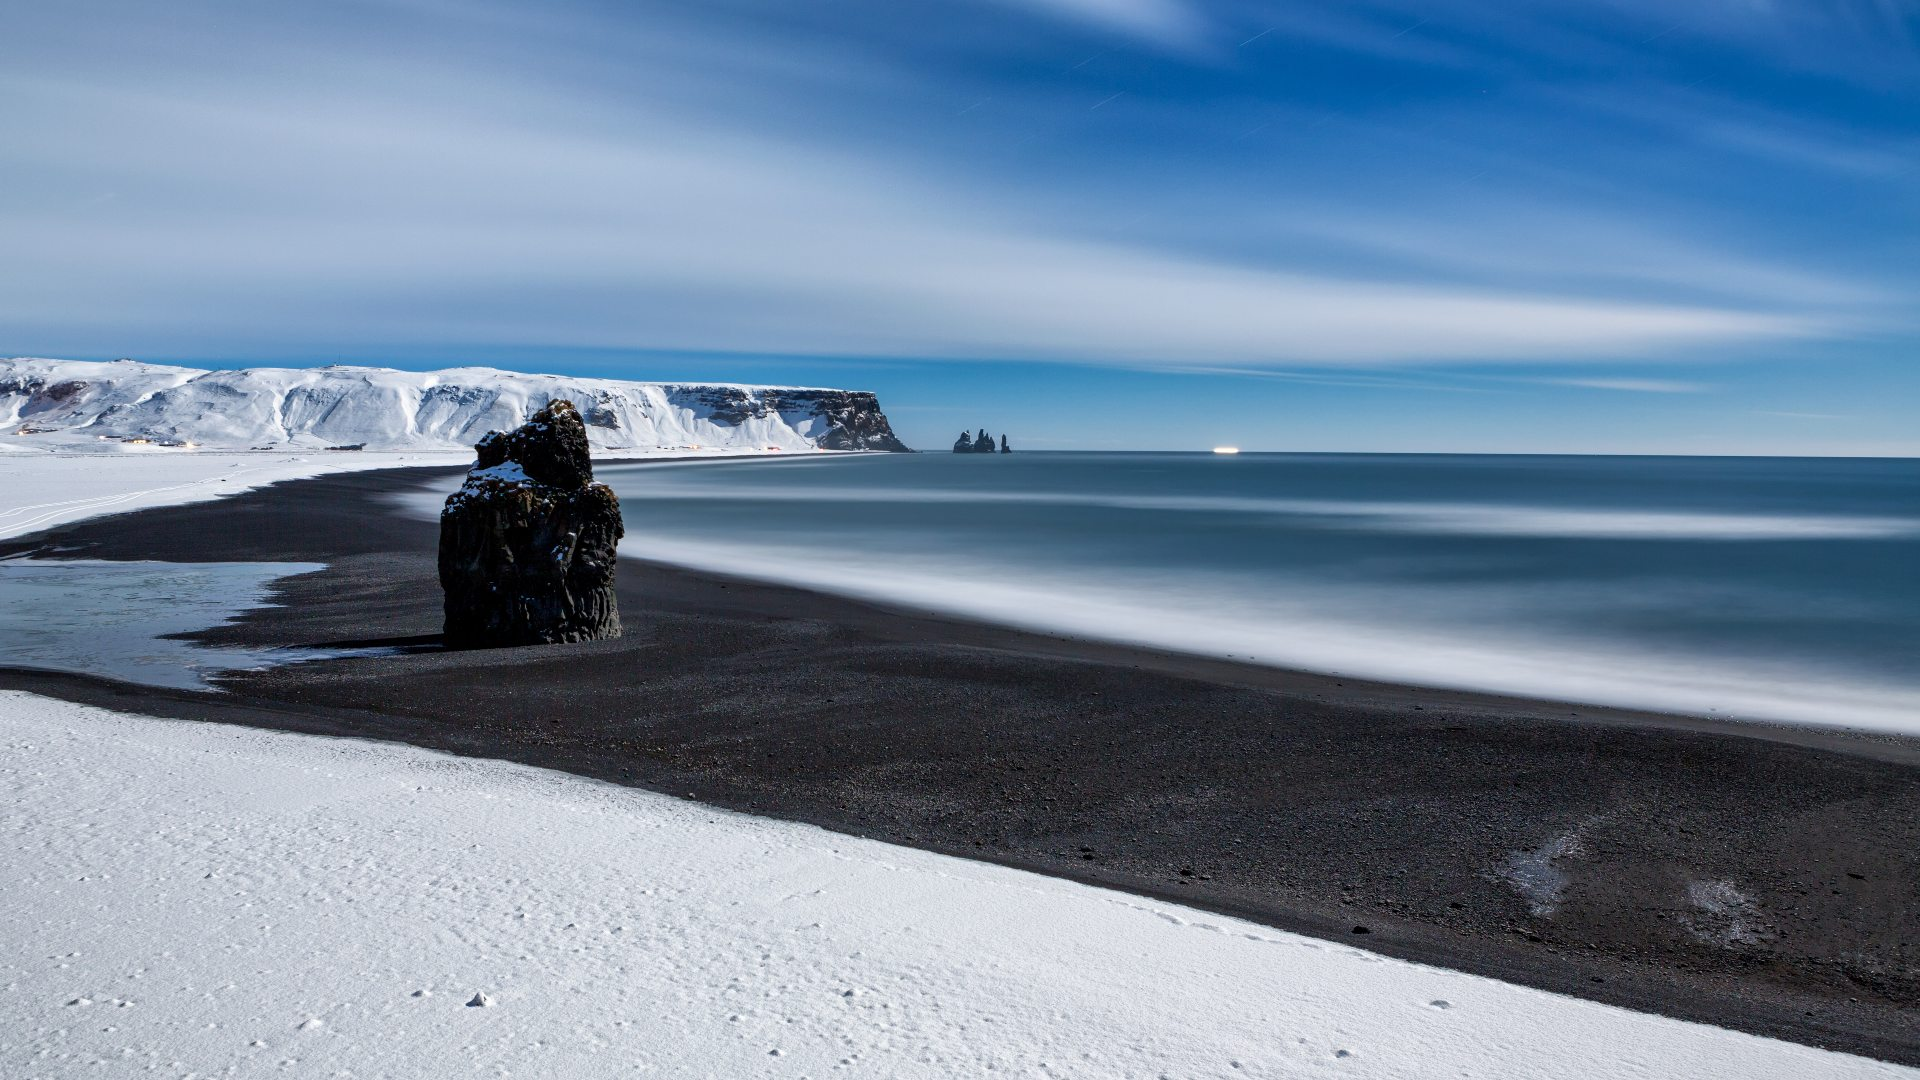 The Reynisfjara black sand beach covered in snow, with the Reynisdrangar rock formation in the distance.